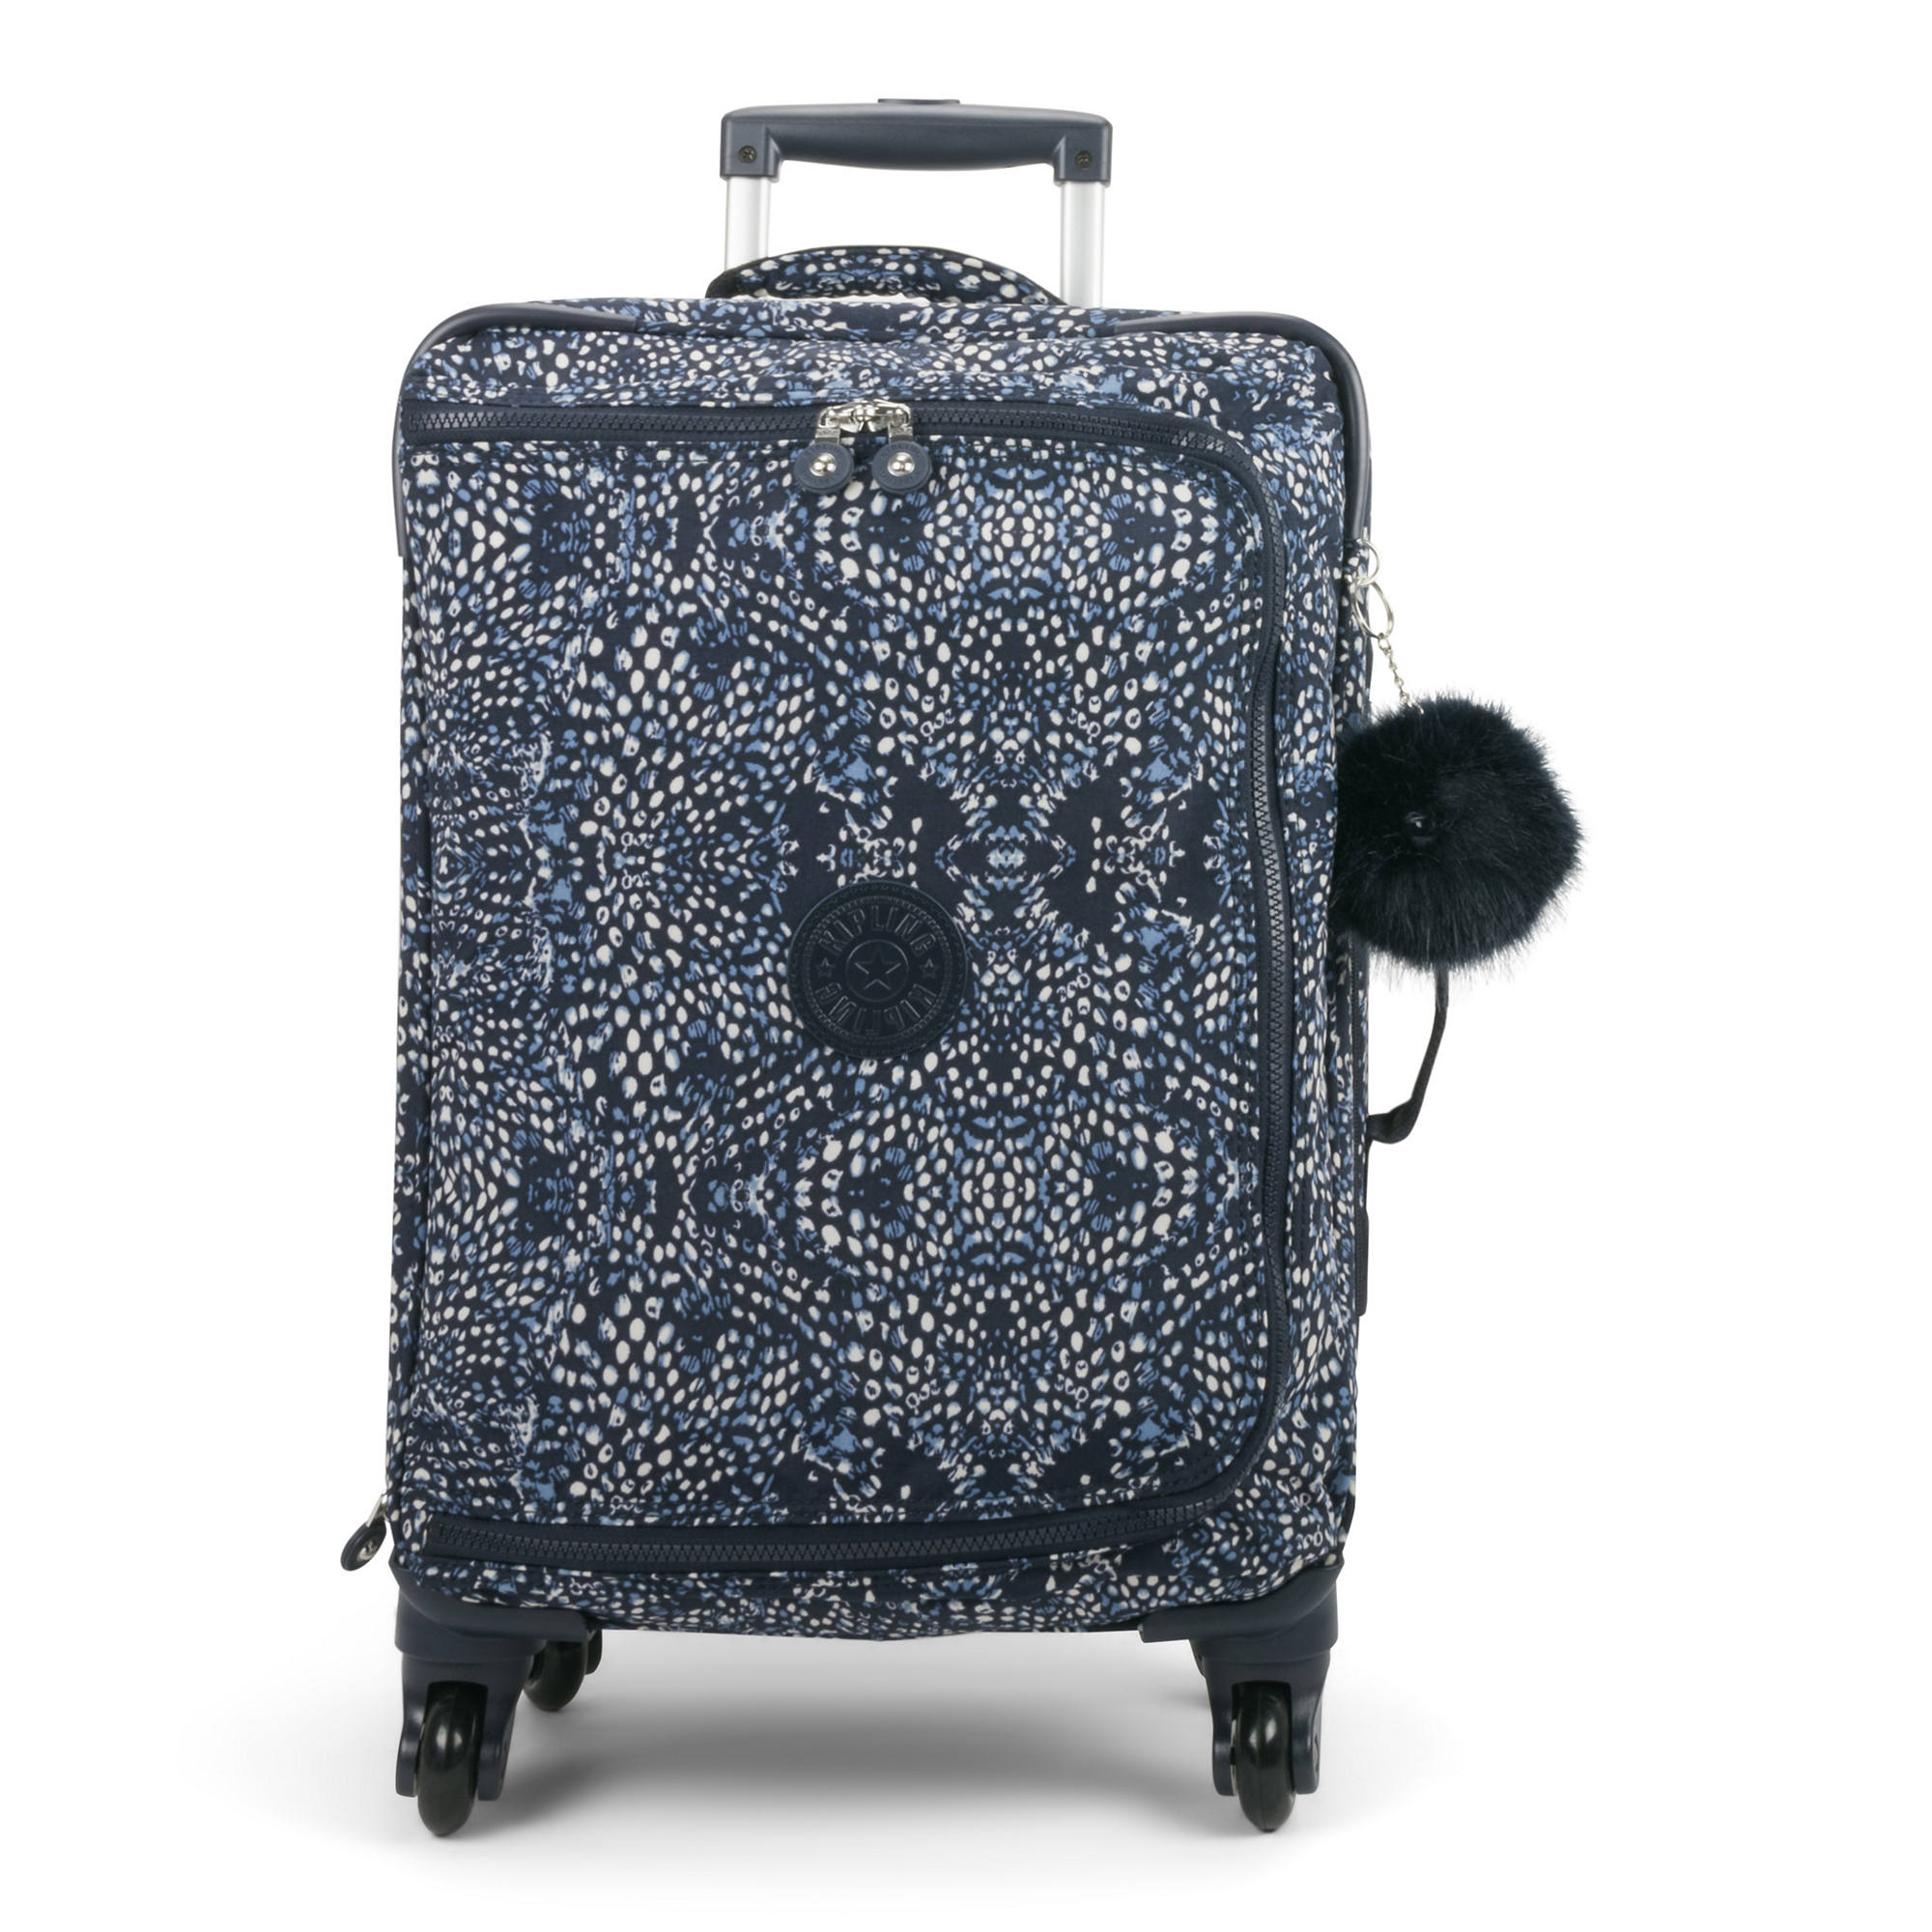 ad1a8aae539 Cyrah Small Printed Rolling Luggage,Soft Feather,large